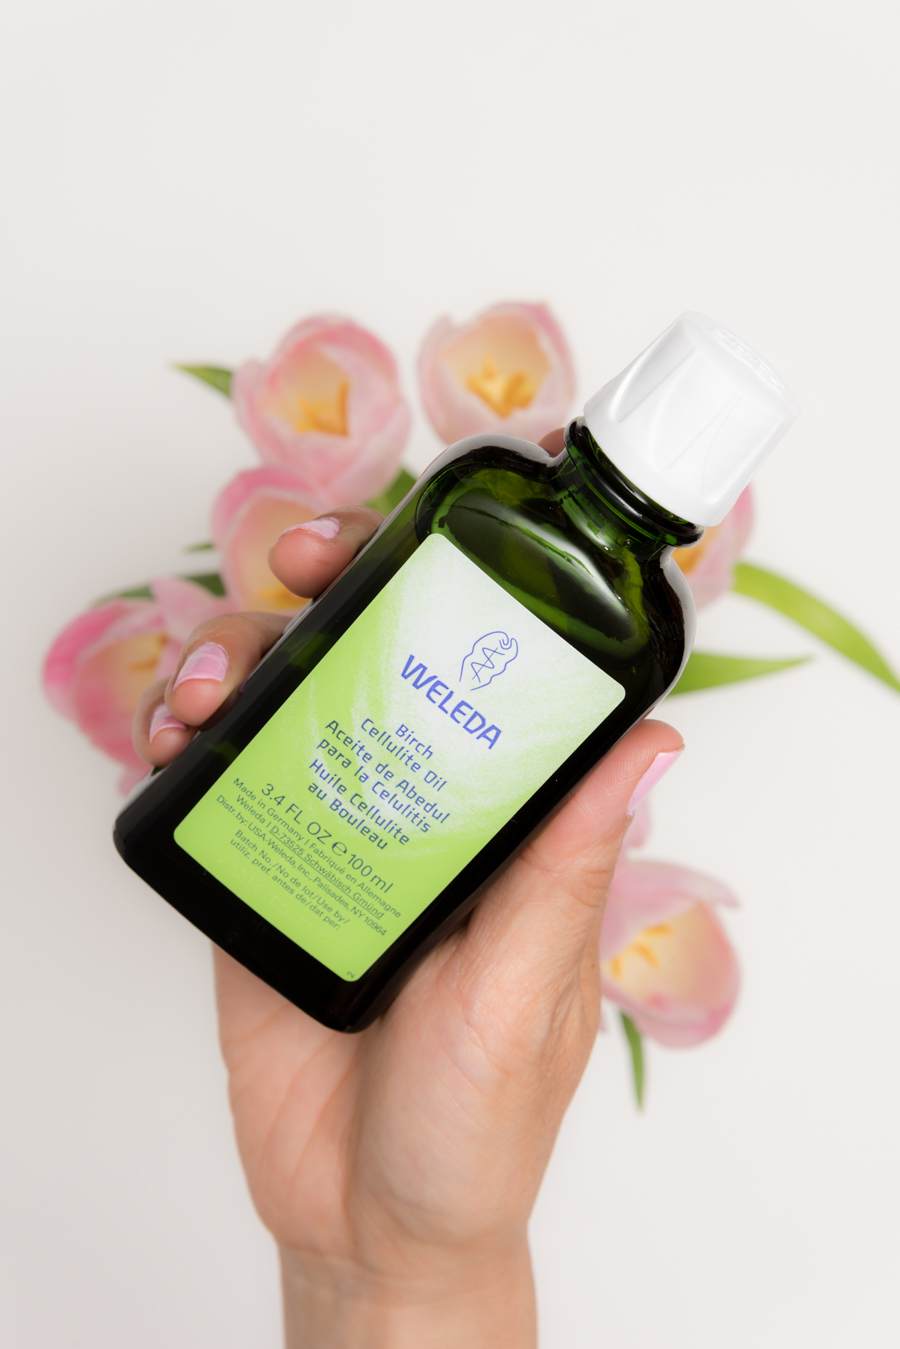 ROCK MAMA NYC LIFESTYLE BLOG - Great Gift For A New Mom - Weleda Birch Cellulite Oil